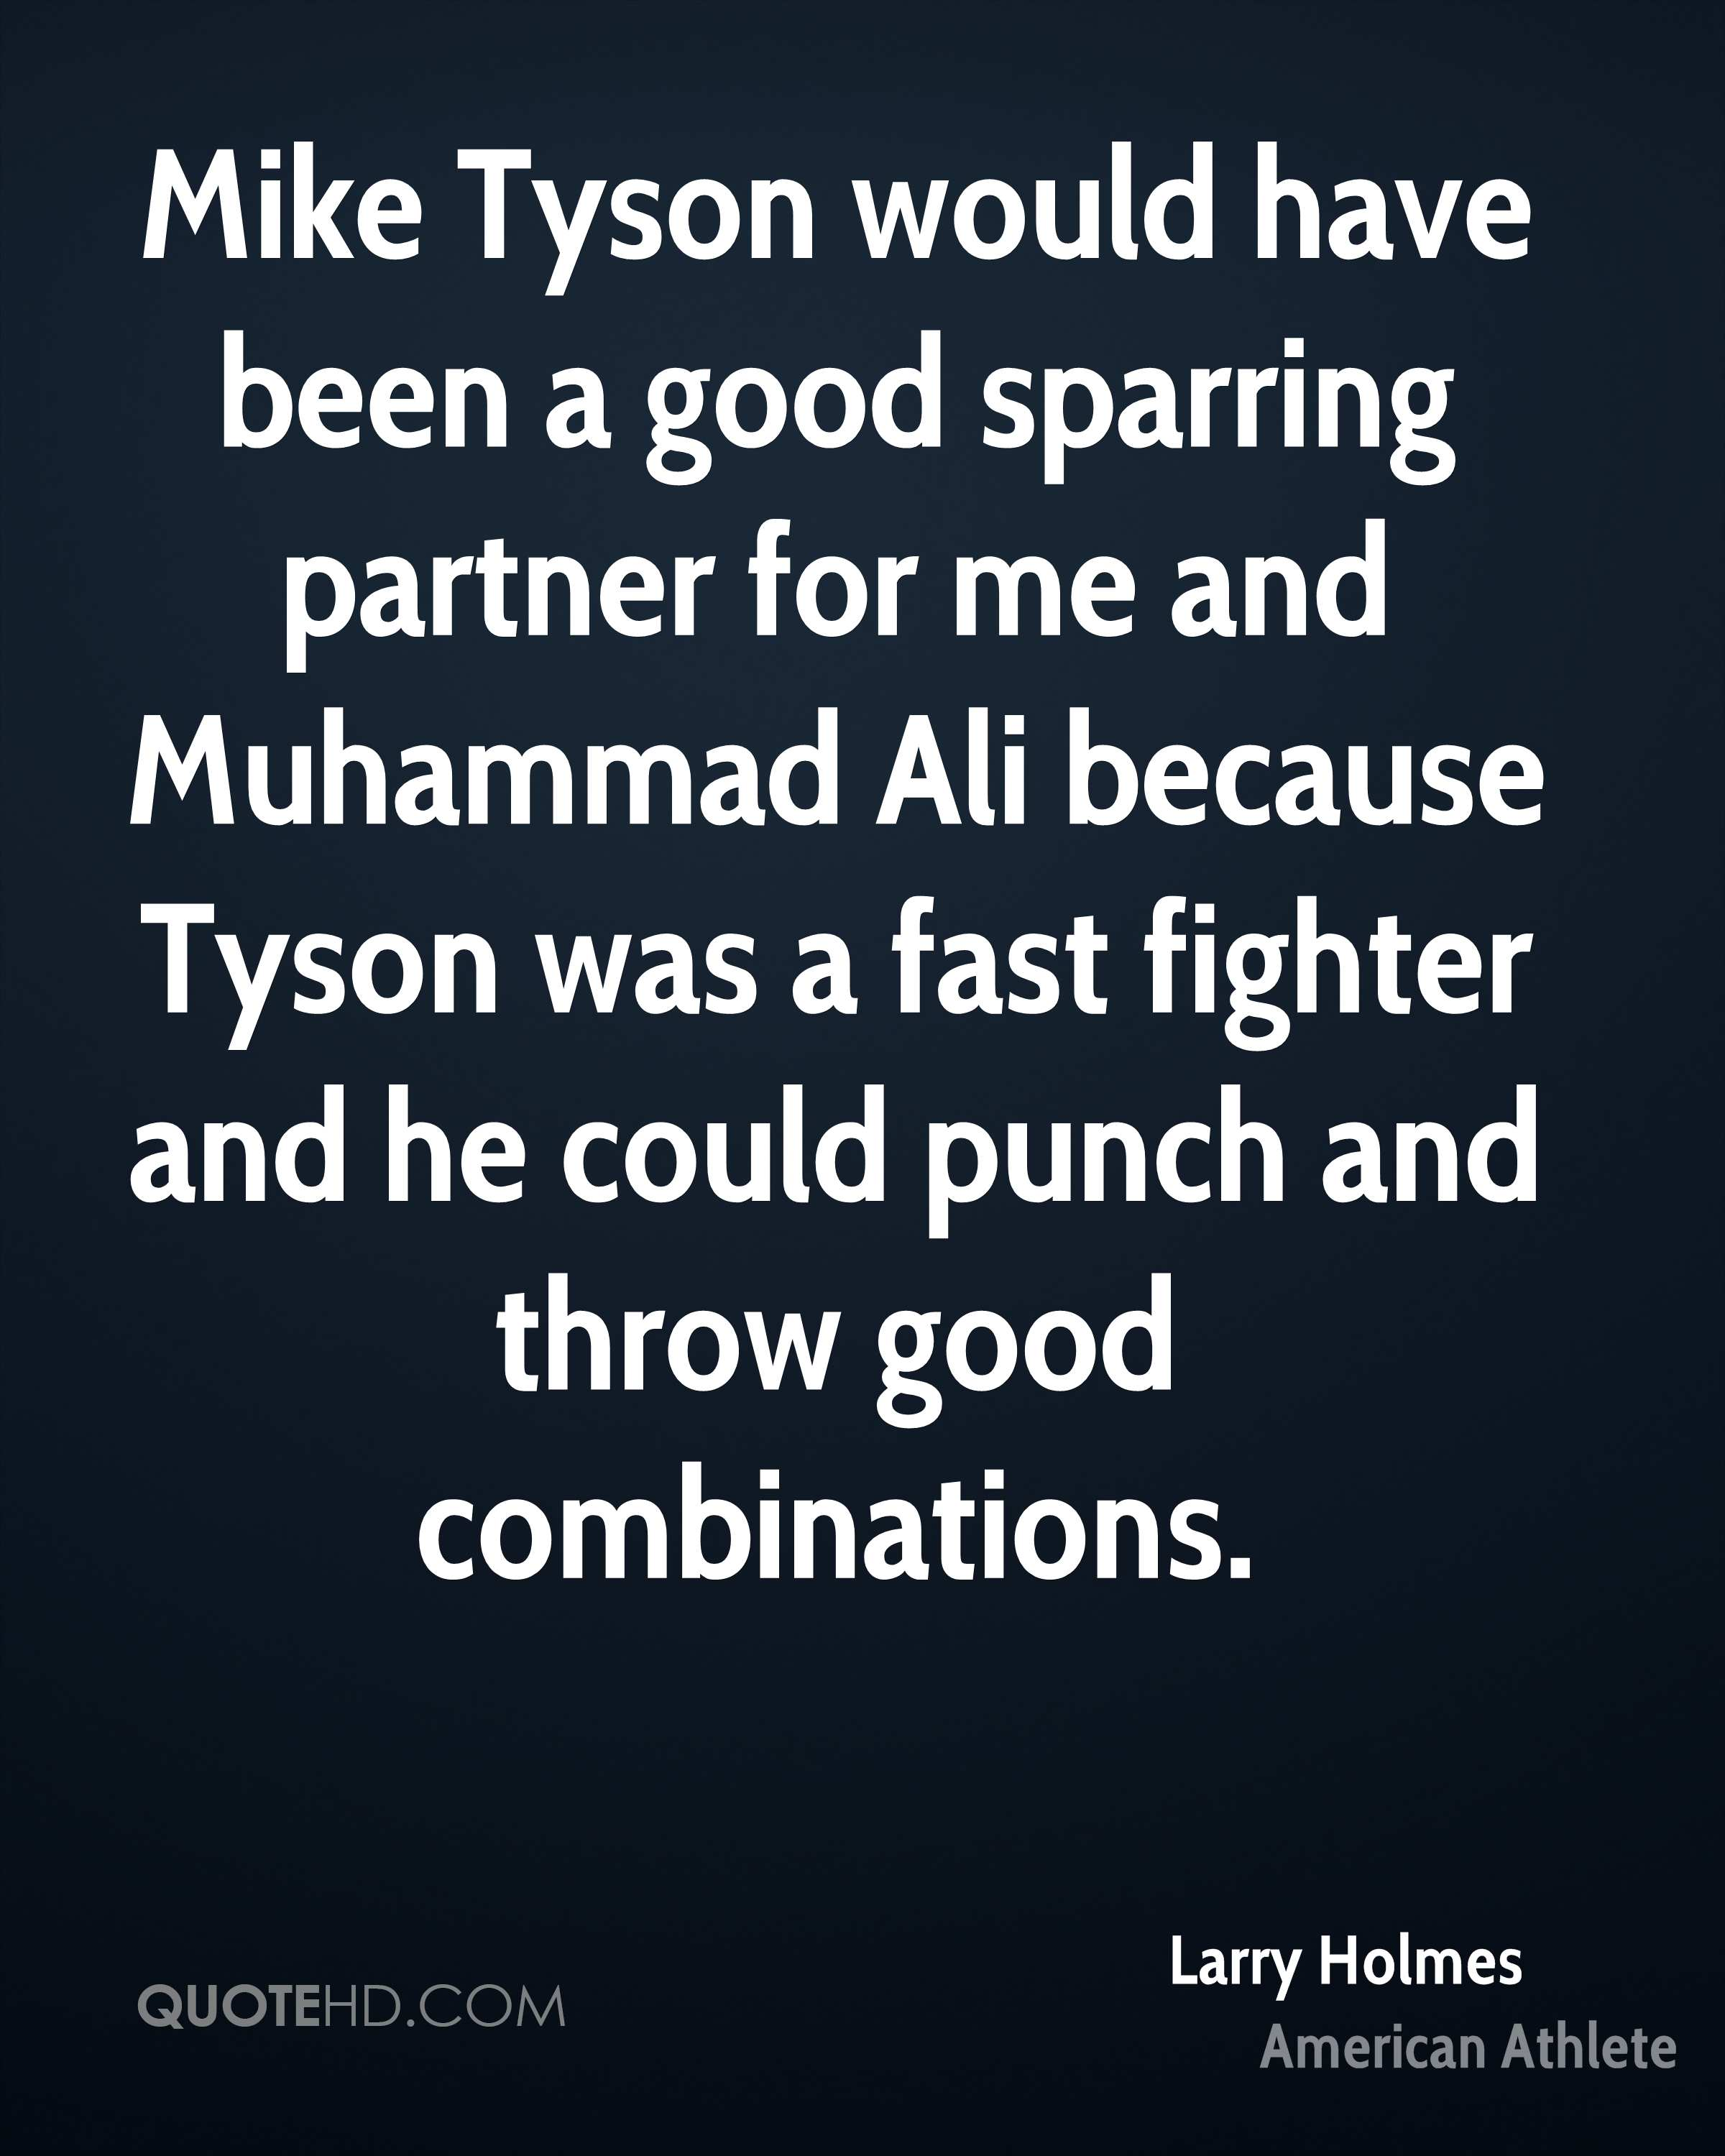 Mike Tyson would have been a good sparring partner for me and Muhammad Ali because Tyson was a fast fighter and he could punch and throw good combinations.